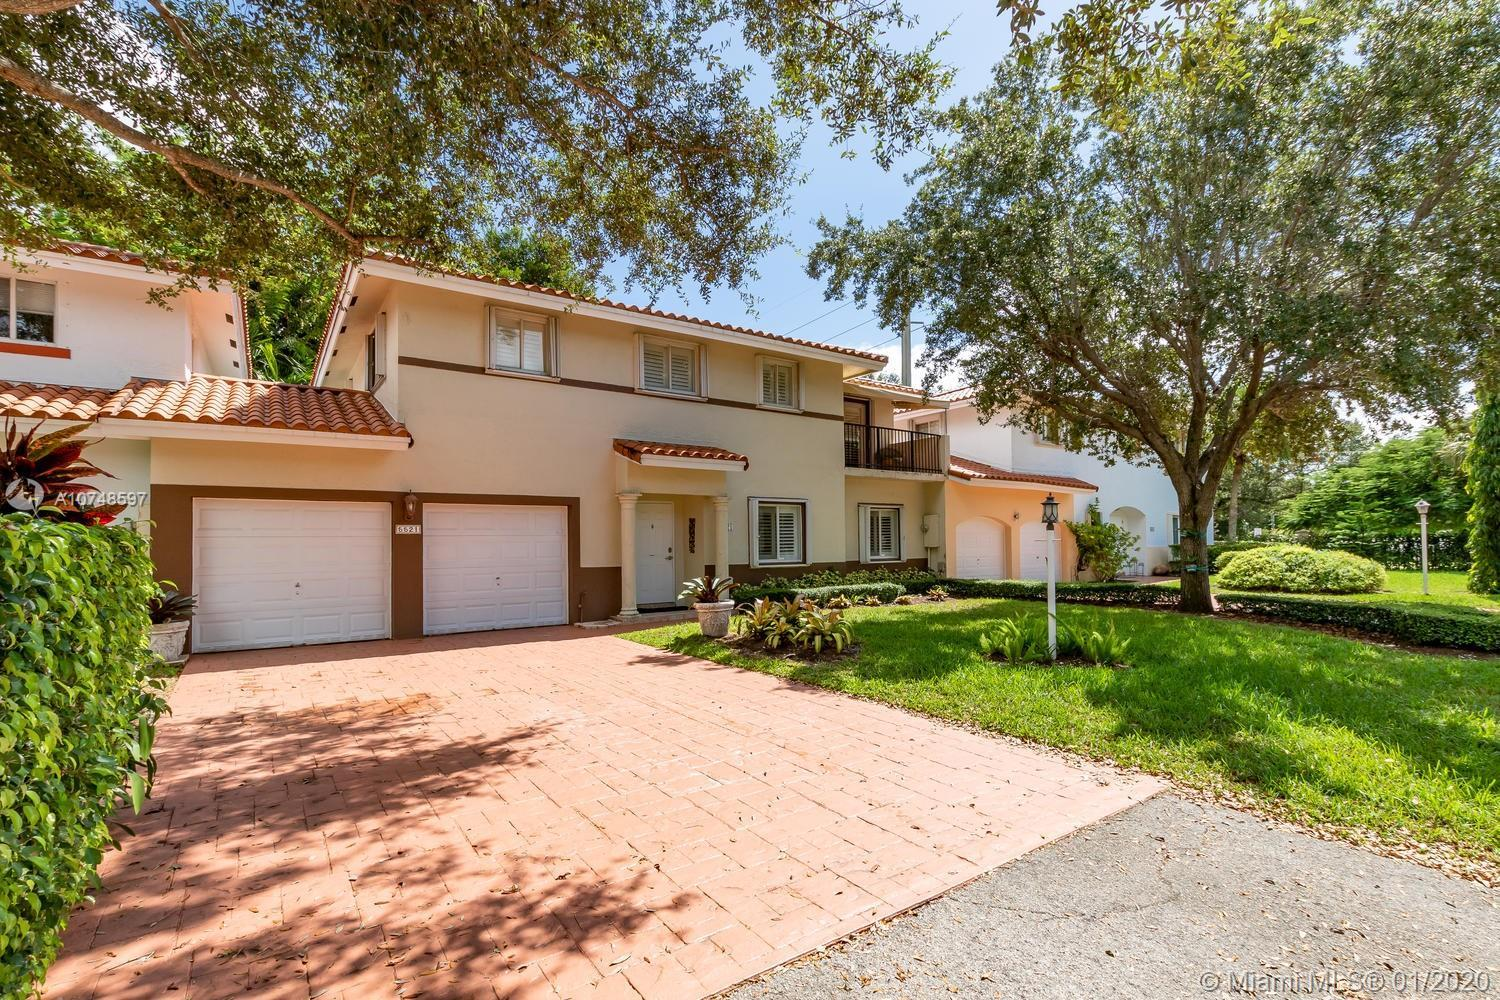 Wonderful, rare opportunity to enjoy living in beautiful Miller Oaks, a tucked-away retreat, gated w